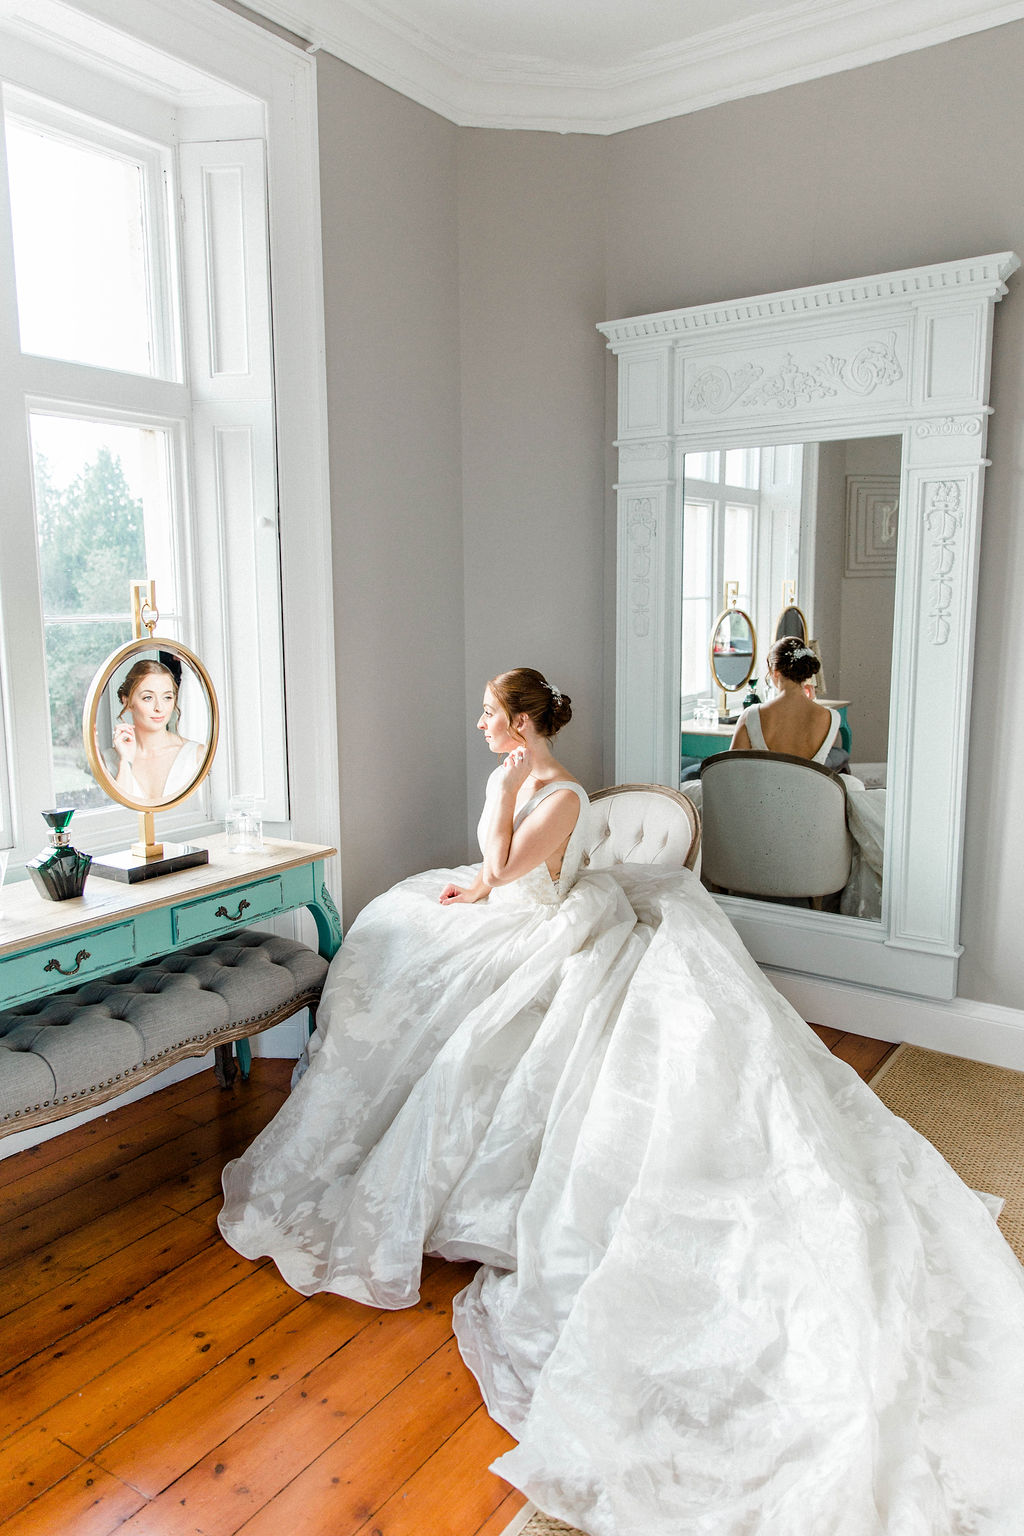 luxury bridal suit at thicket priory wedding venue in North Yorkshire